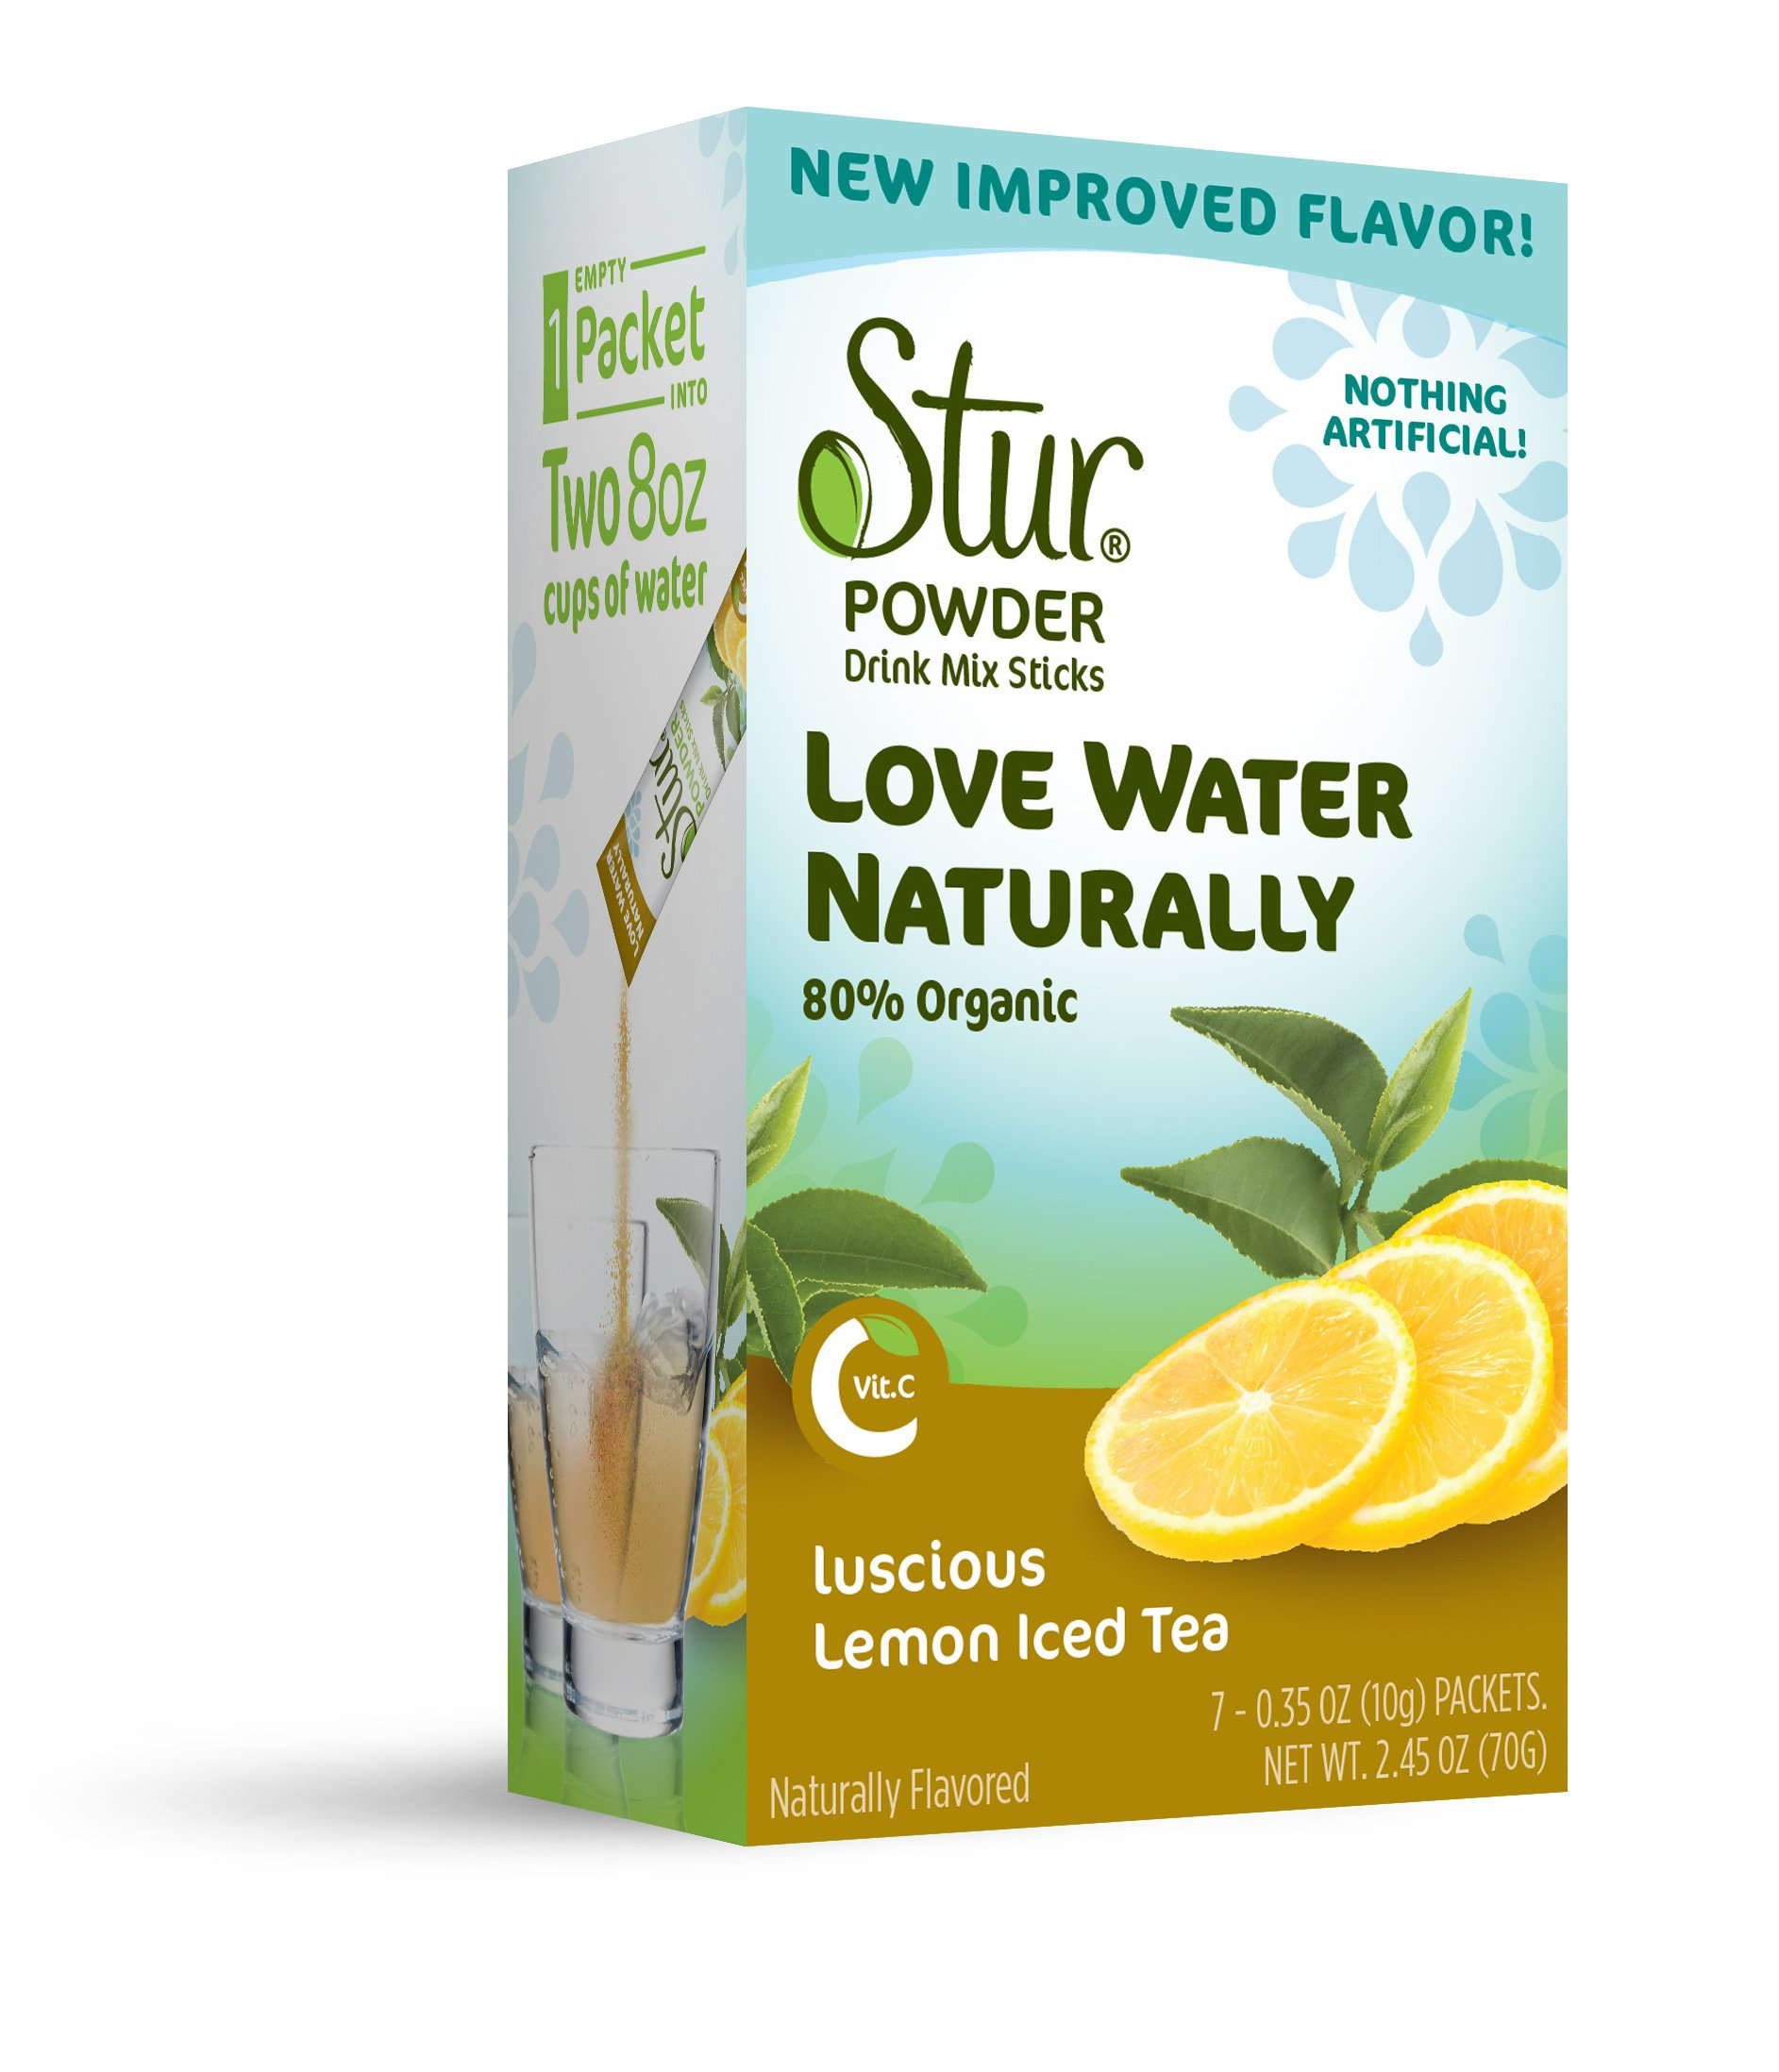 Stur Drinks - Lemon Iced Tea, Natural Powder Drink Mix, 42 Sticks, Makes 84 Servings, Made with Organic Cane Sugar, Stevia, and Natural Flavors, Contains High Antioxidant Vitamin C